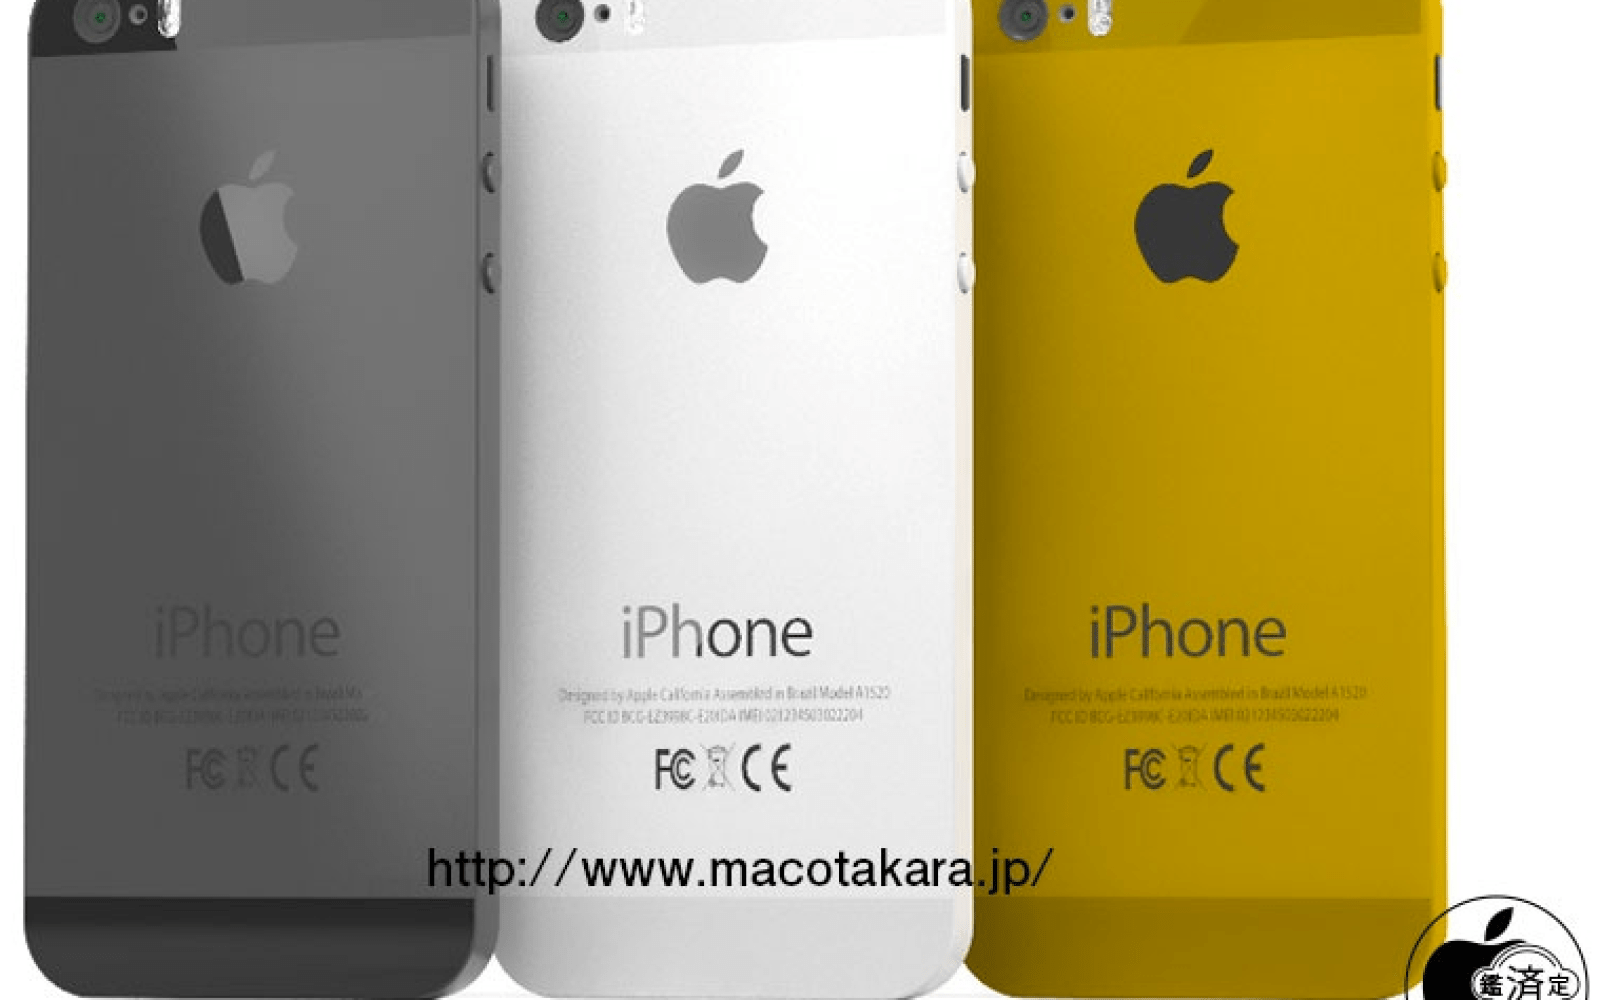 And this morning's second dubious iPhone rumor: a gold 5S